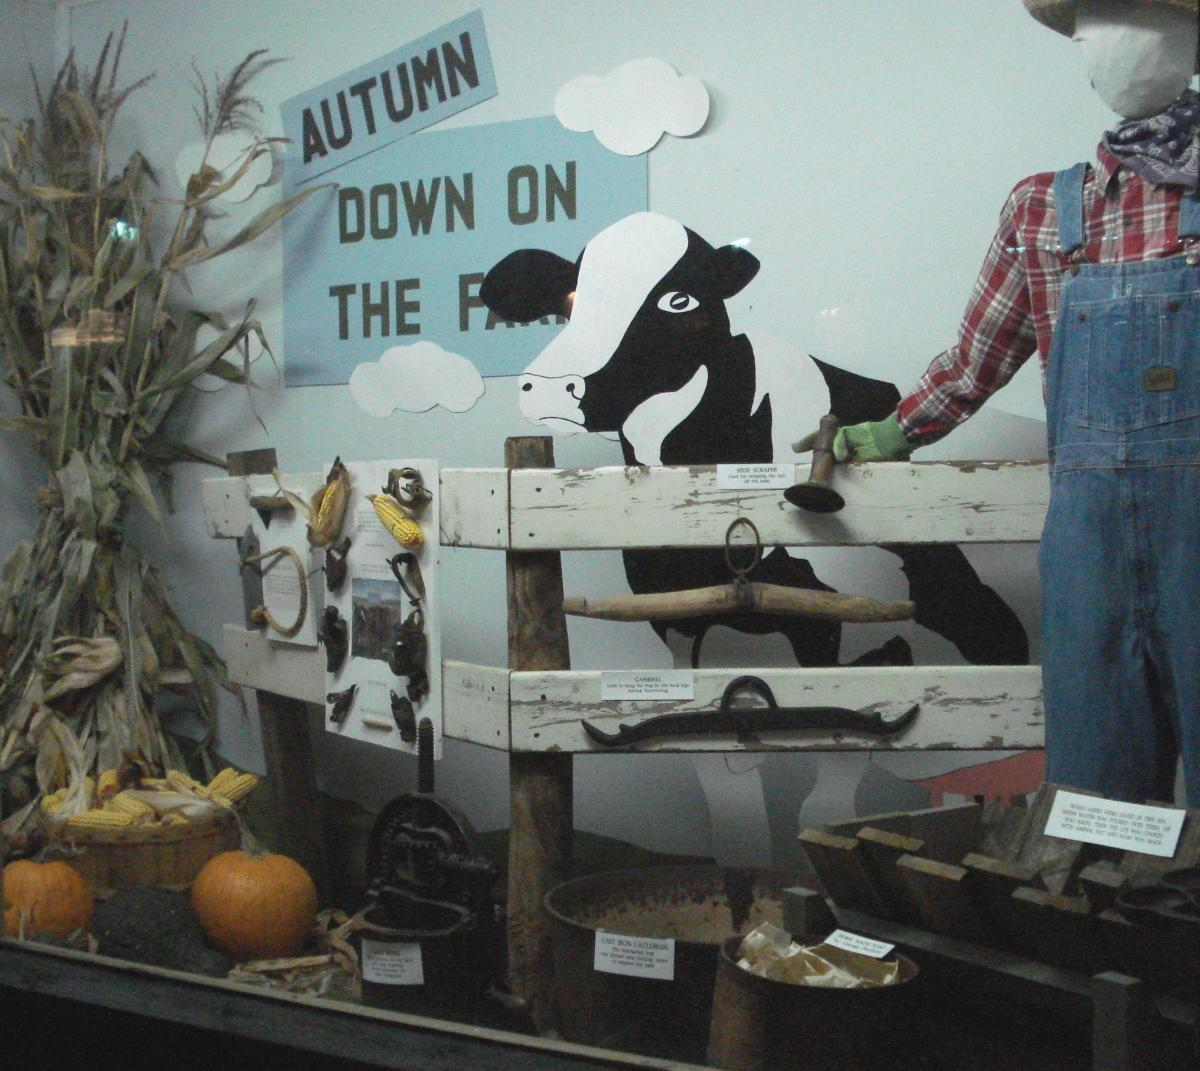 Autumn is down on the Farm in this window display and you can also observe pumpkins and faded plants.